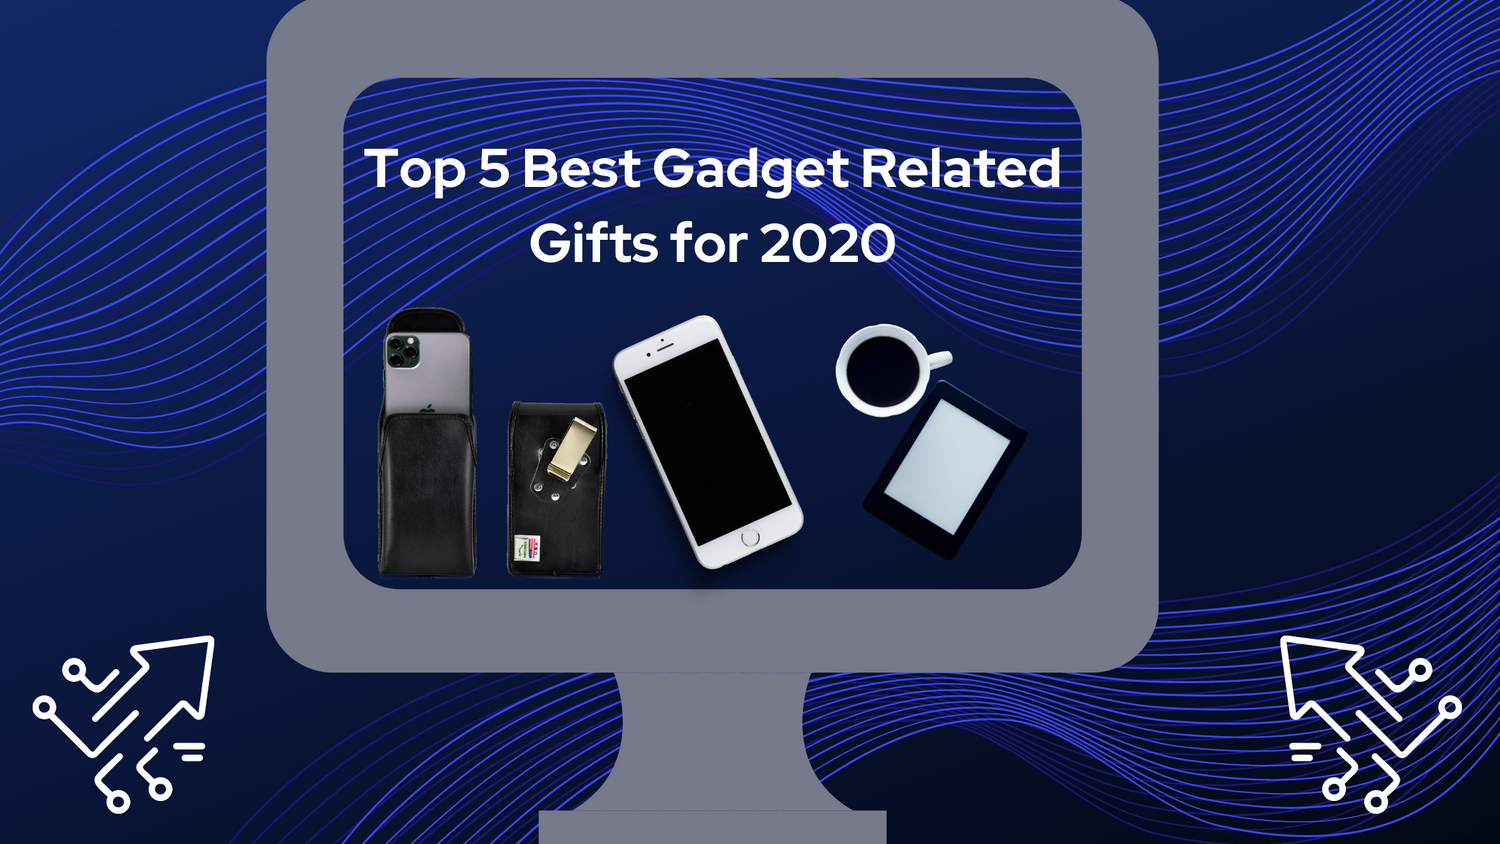 Top 5 Best Gadget Related Gifts for 2020